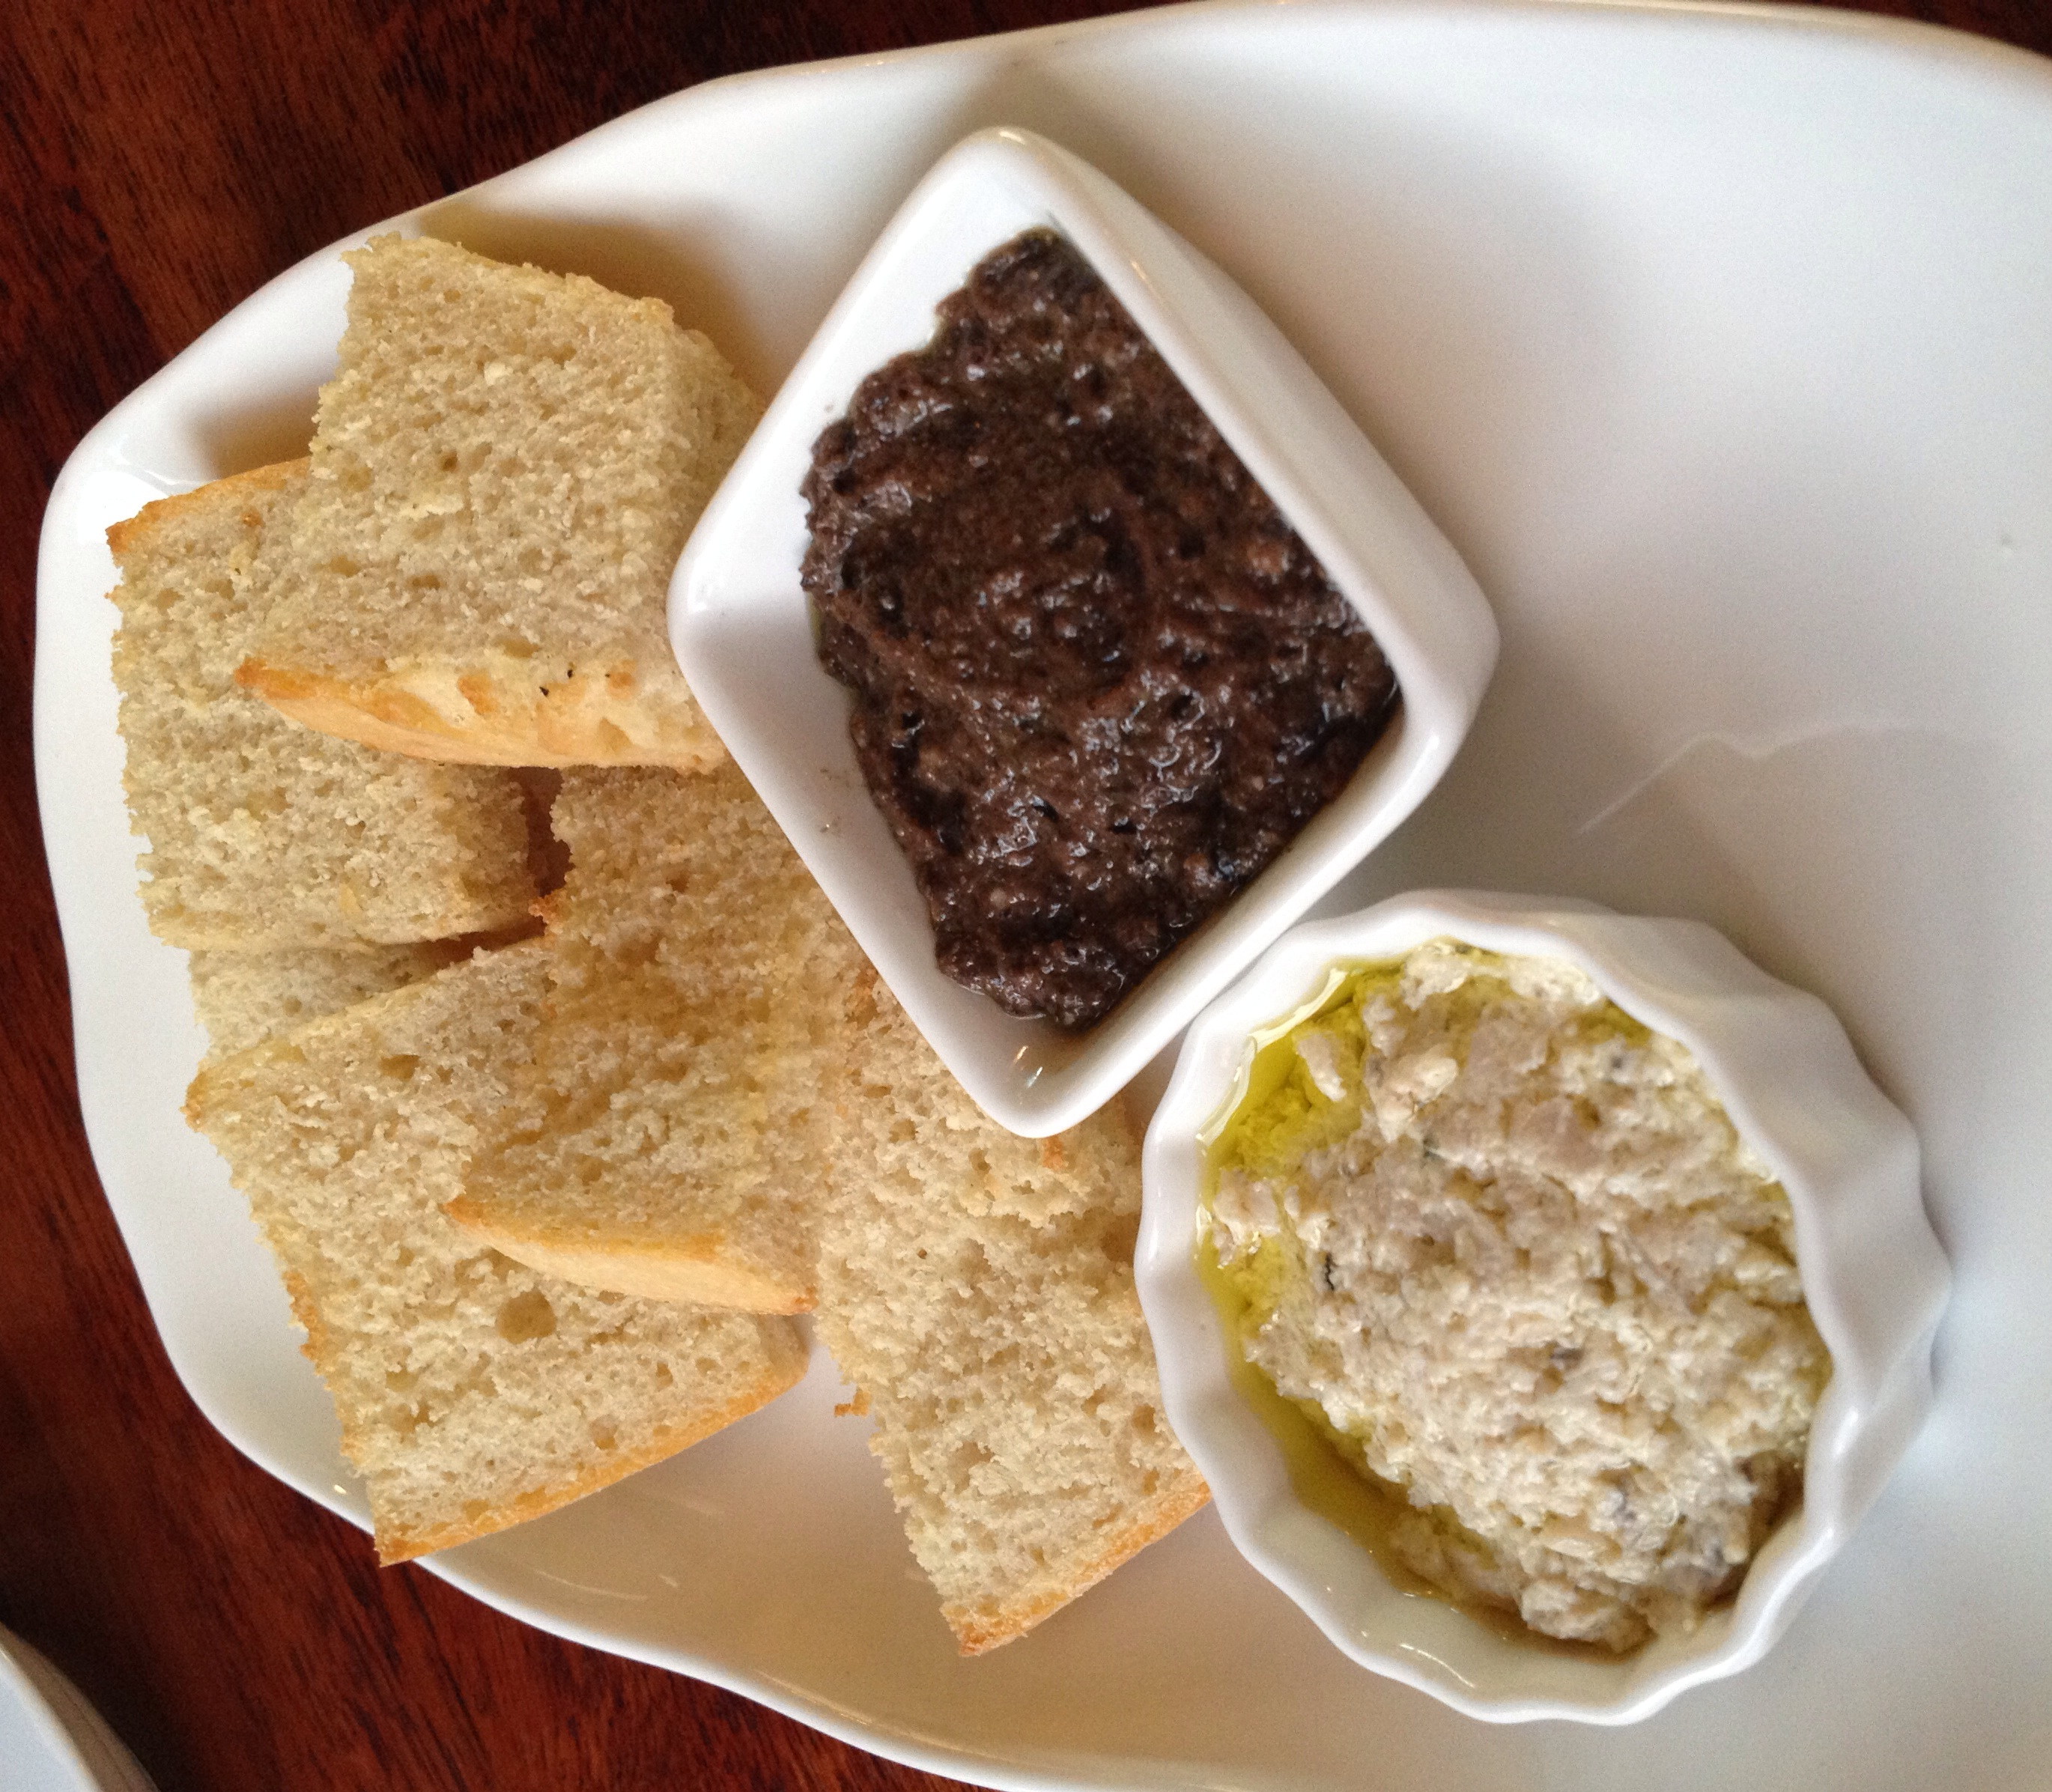 This lovely starter comes with your meal. Hot toasted ciabatta bread with mushroom spread and a  black olive tapenade. I looooveee this black olive spread. It wasn't too salty here and the flavours were rich mixed in with the good quality olive oil.